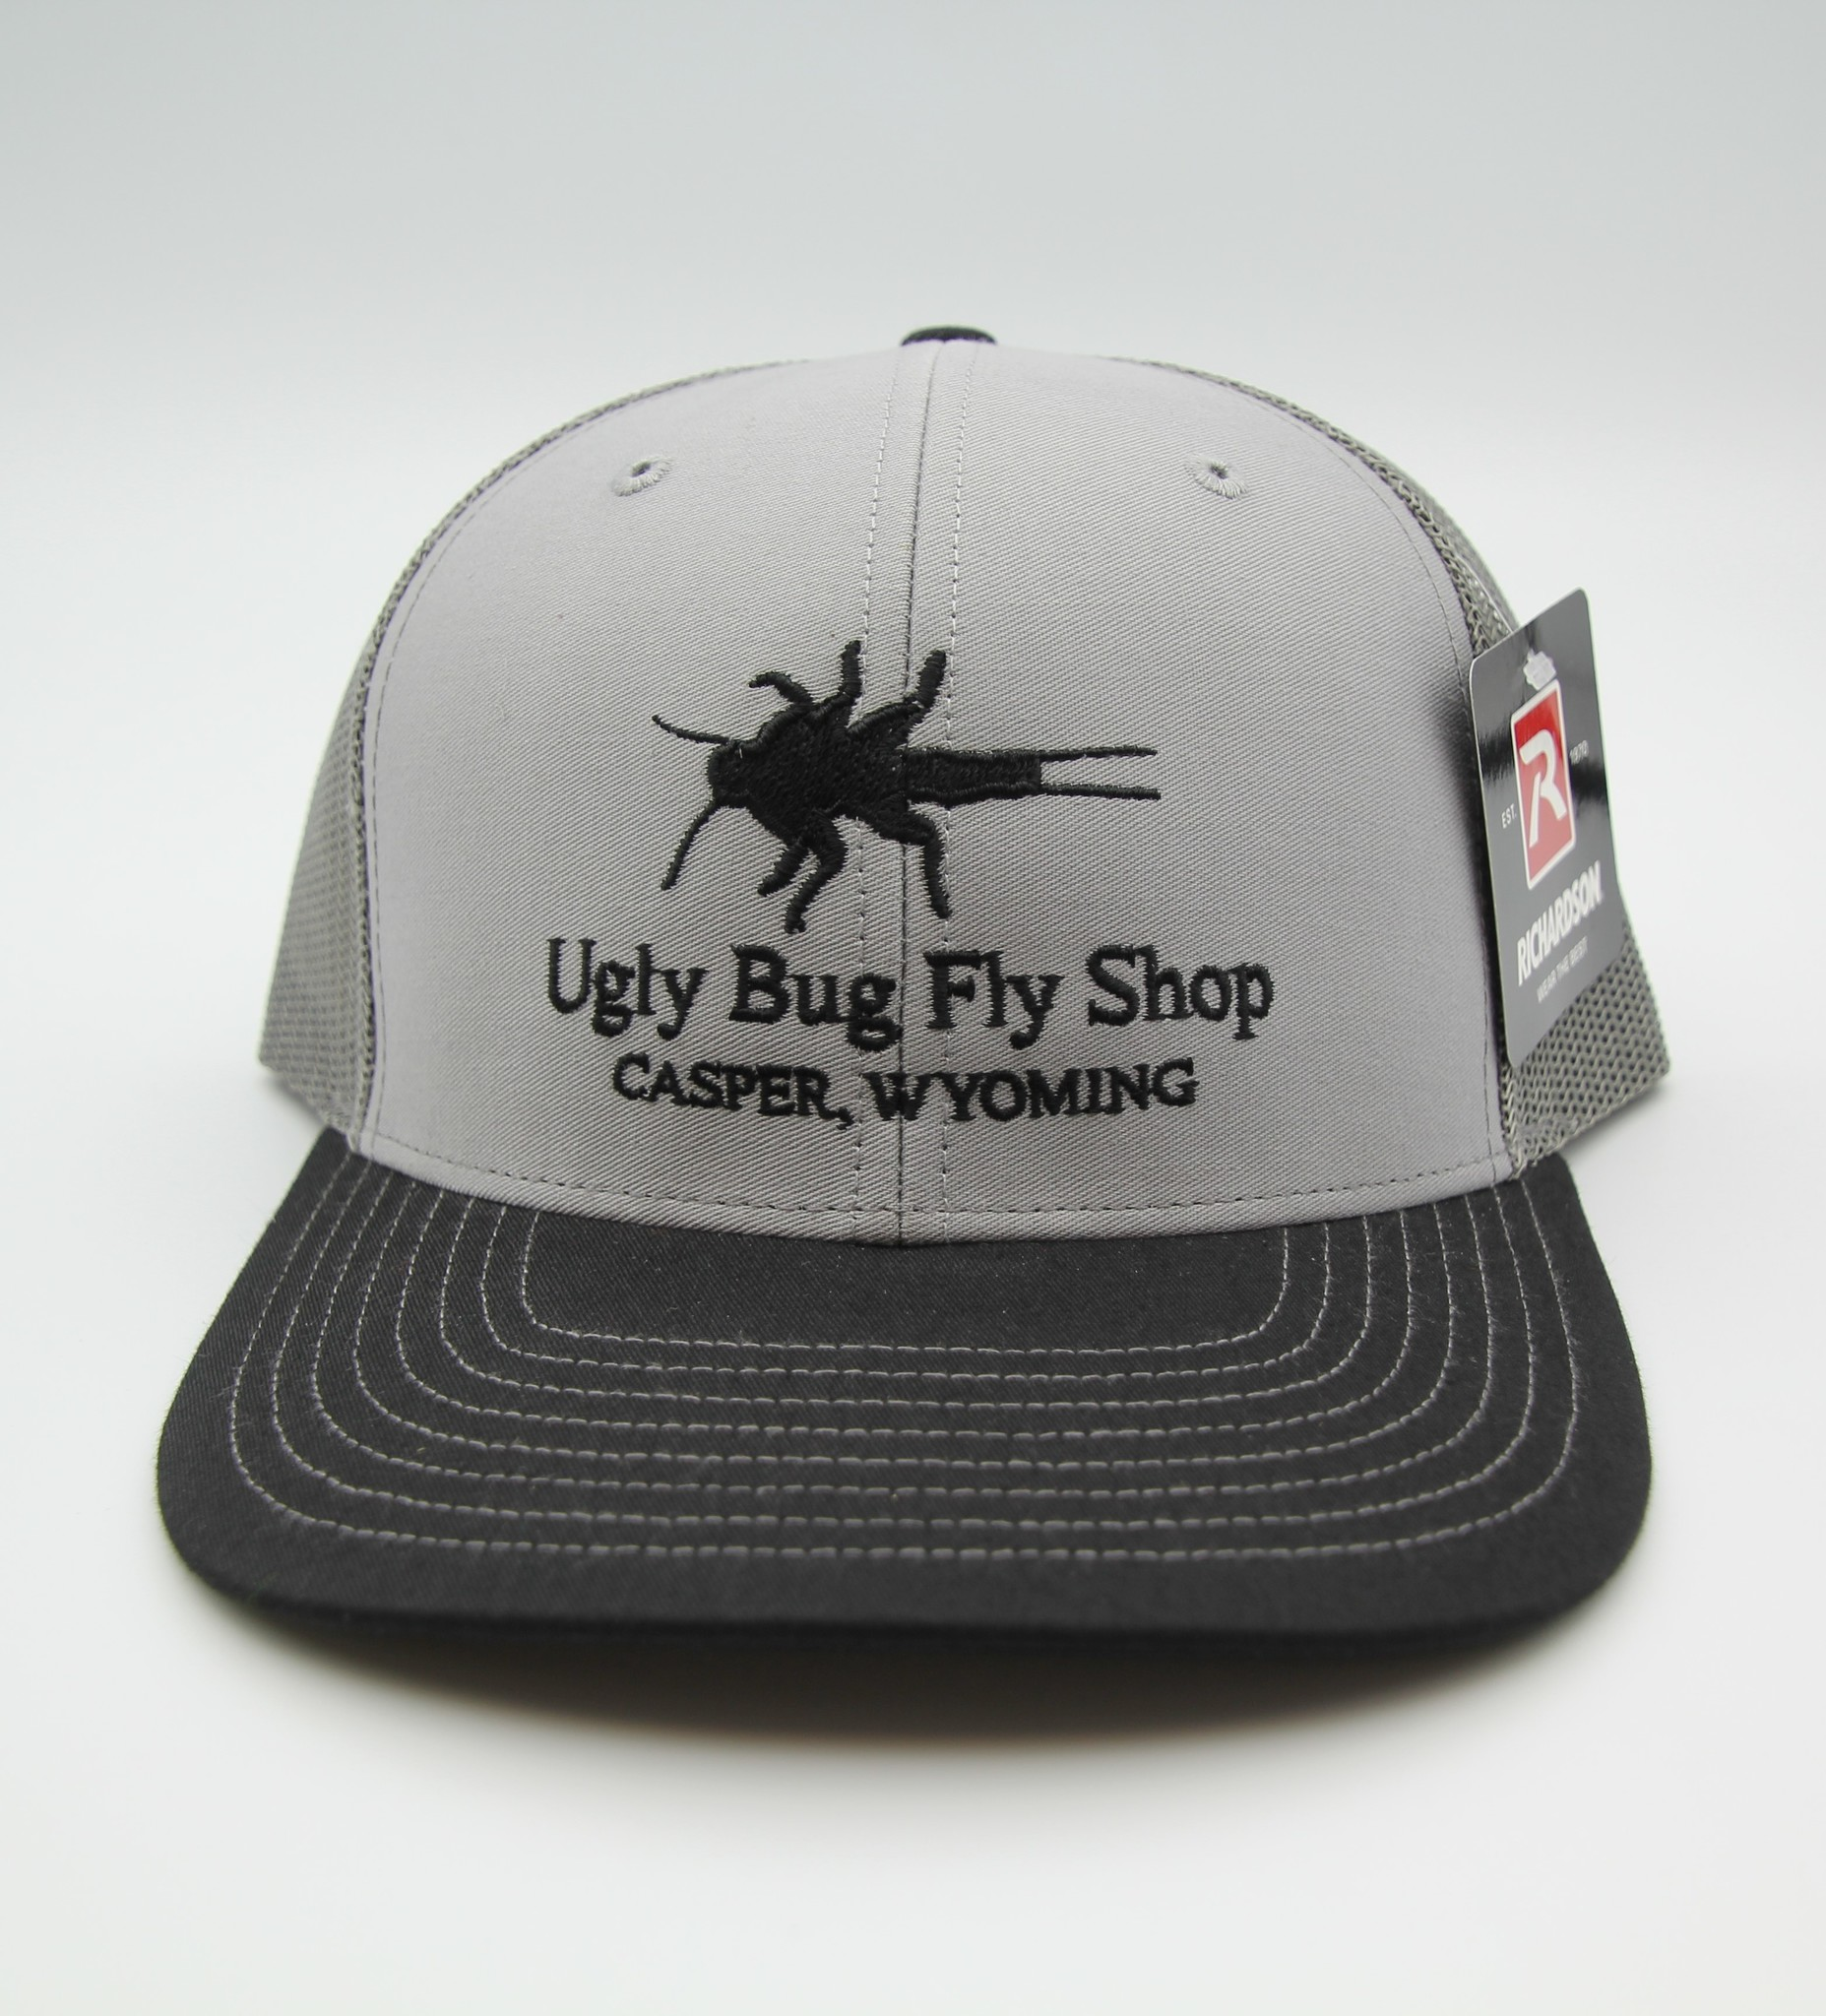 cd81eb2a743c6 RICHARDSON 112FP WITH UGLY BUG CASPER WYOMING ON FRONT - Ugly Bug ...